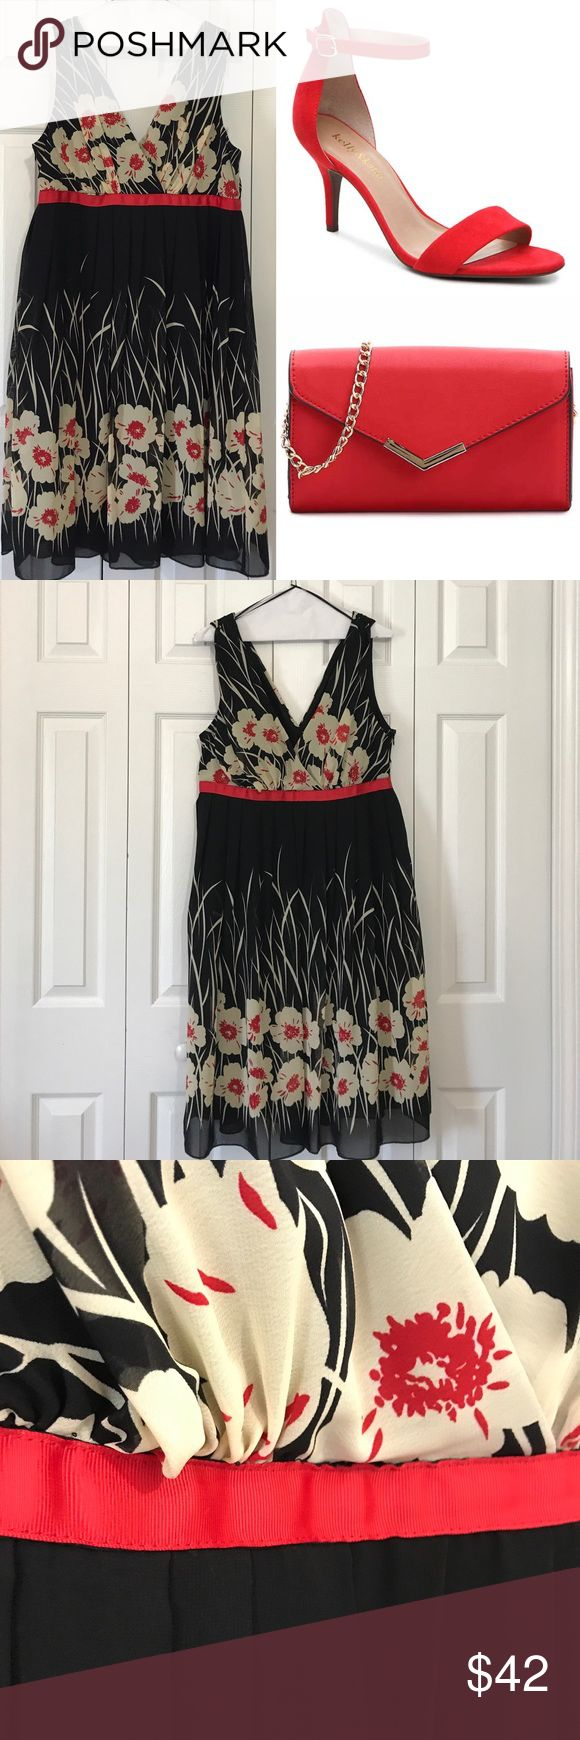 """Women Dress Catch an eye with this urban expression! Dress Barn women size 16 black, cream and red deep """"V"""" front/back design dress. Side zipper, fully lined and red ribbon waist design. Dress has molded bra cup inserts. Accessories sold separately. FREE Smart Tape ($10 Value) when you purchase dress at listed price. Dress Barn Dresses Midi"""